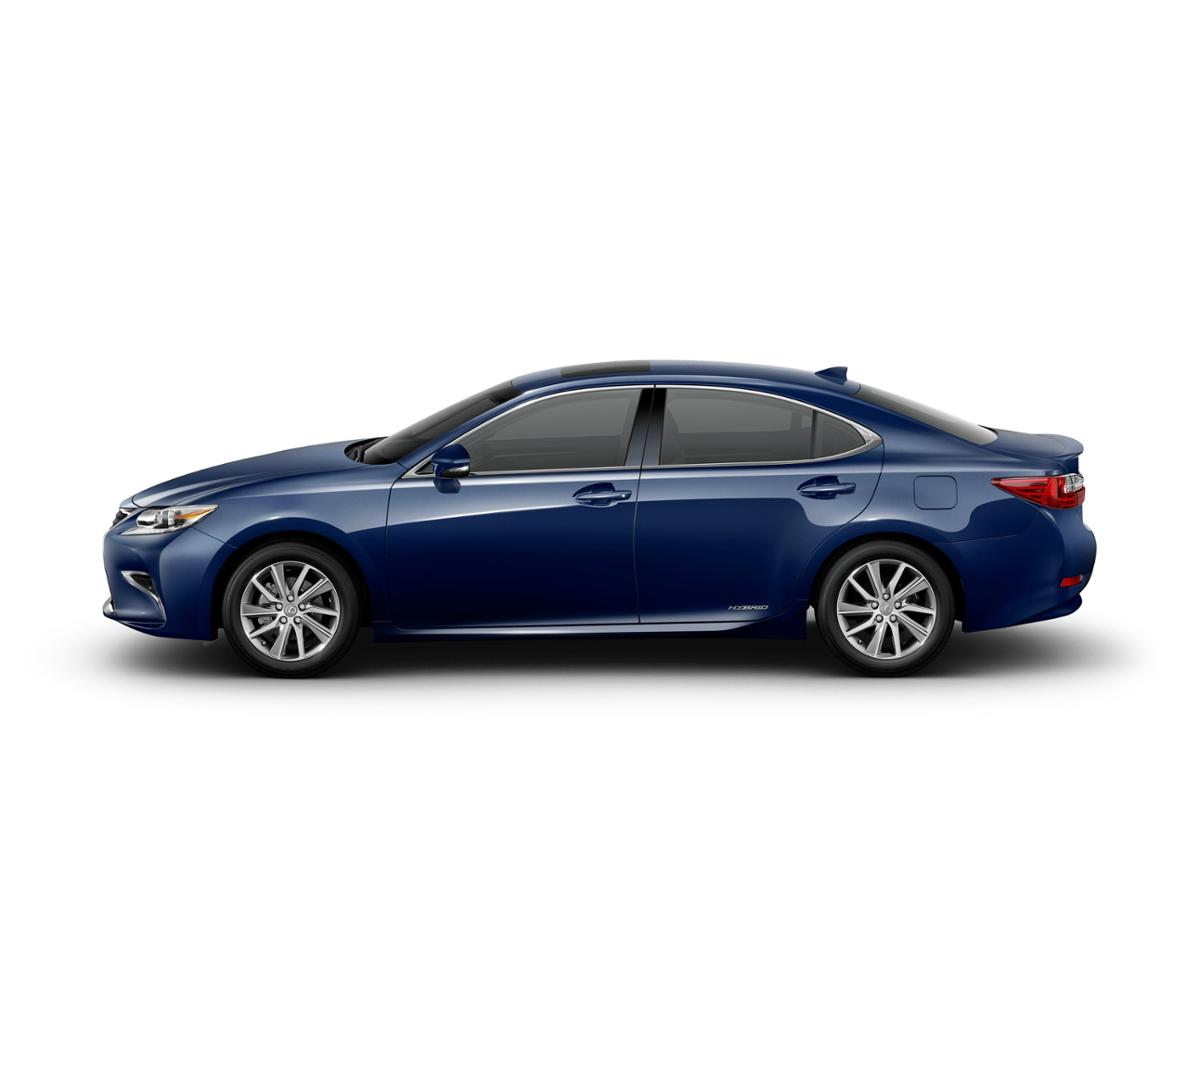 Haldeman Lexus Of Princeton Is A Lawrenceville Lexus